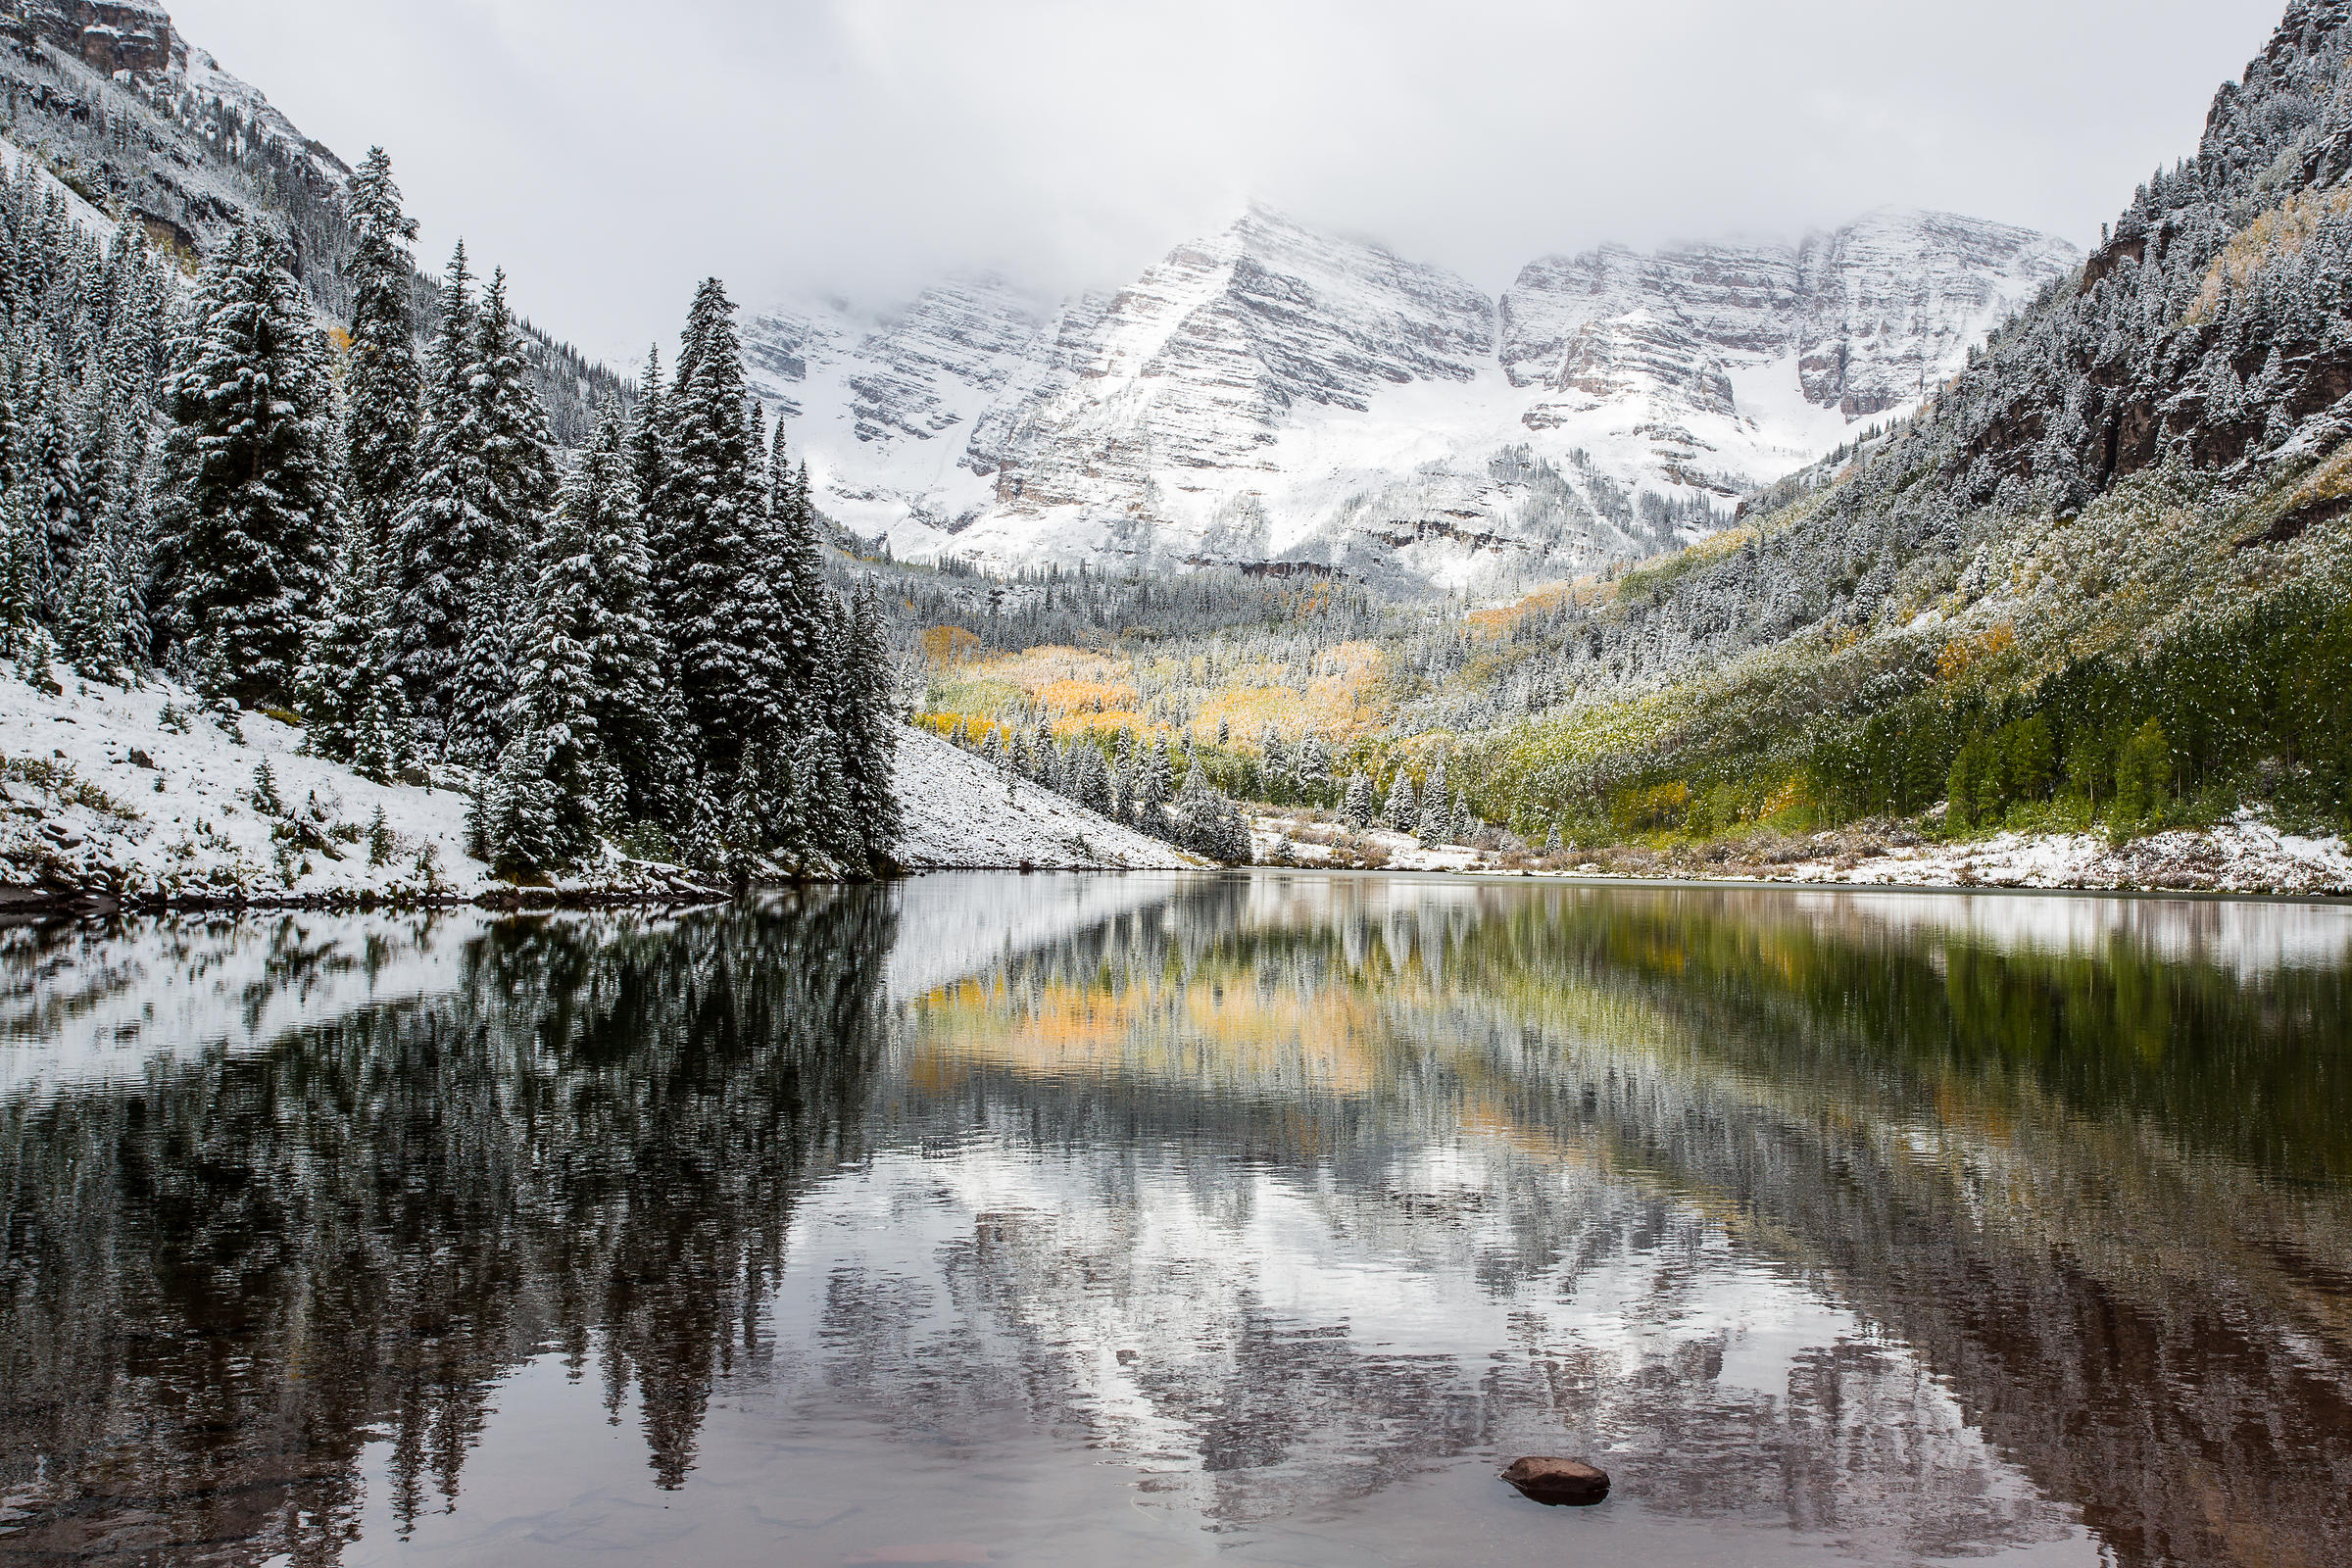 Snowy Fall in the Maroon Bells